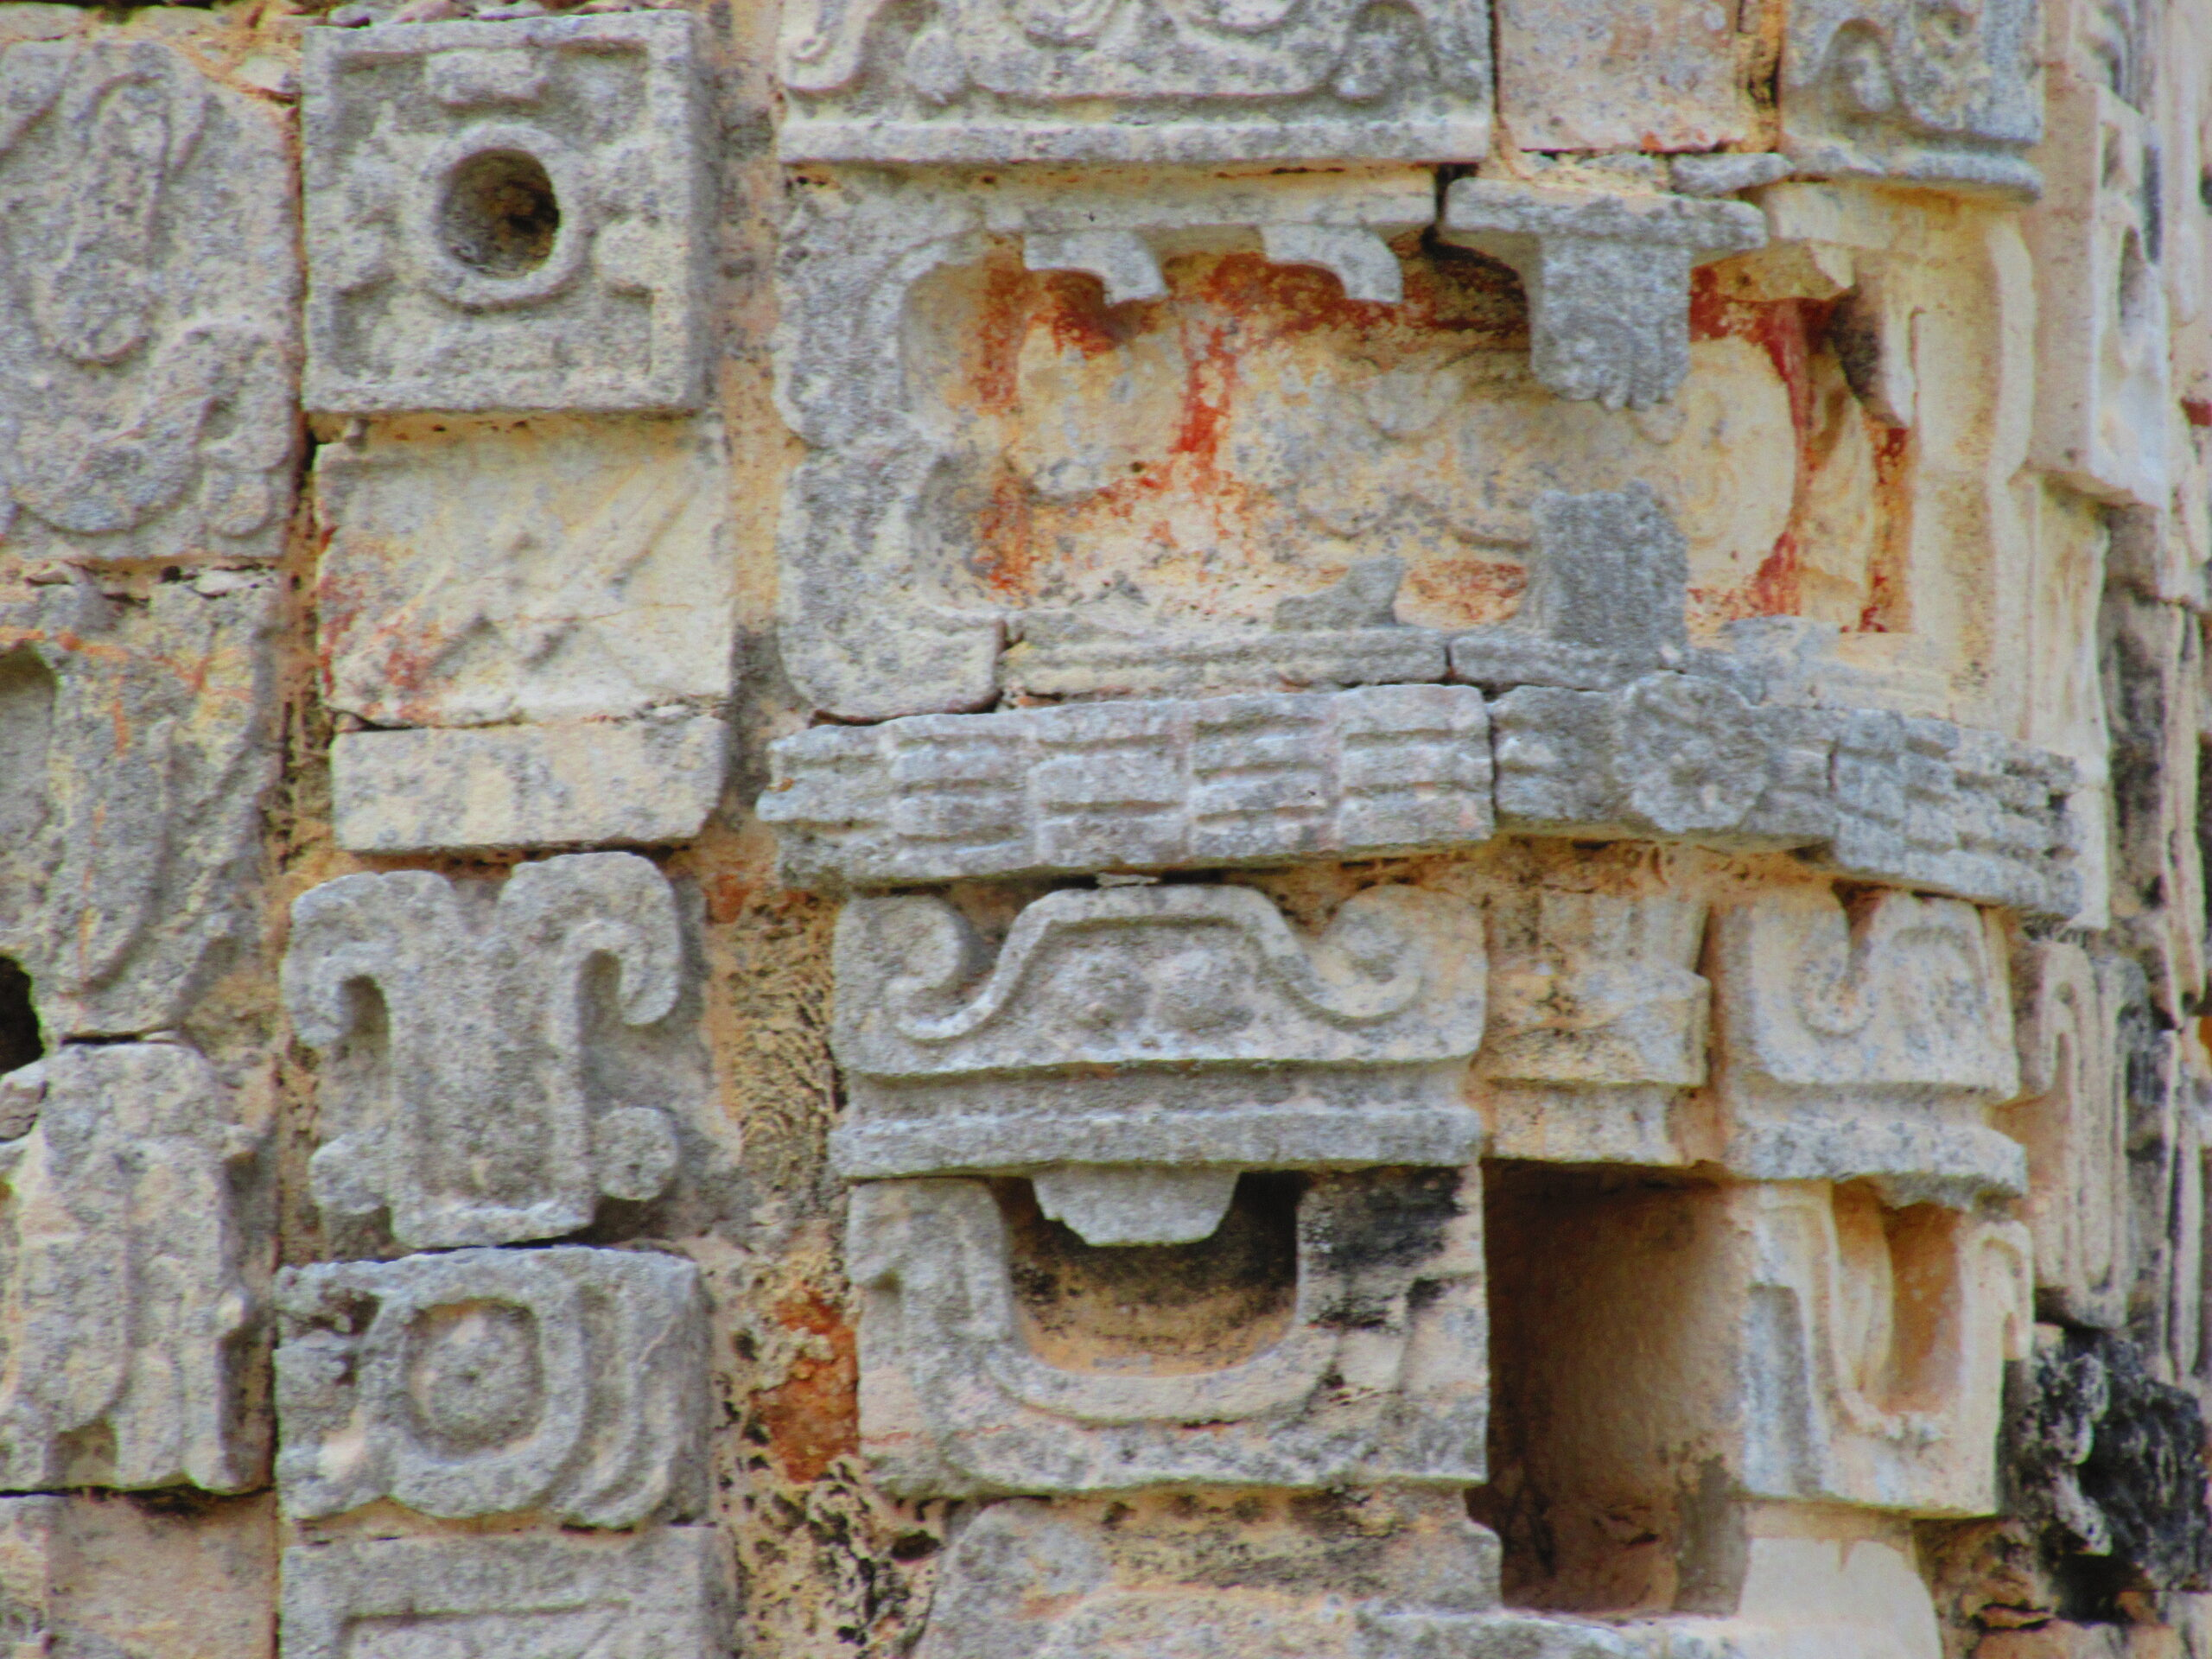 The Phenomenal Mayan Ruins of Uxmal